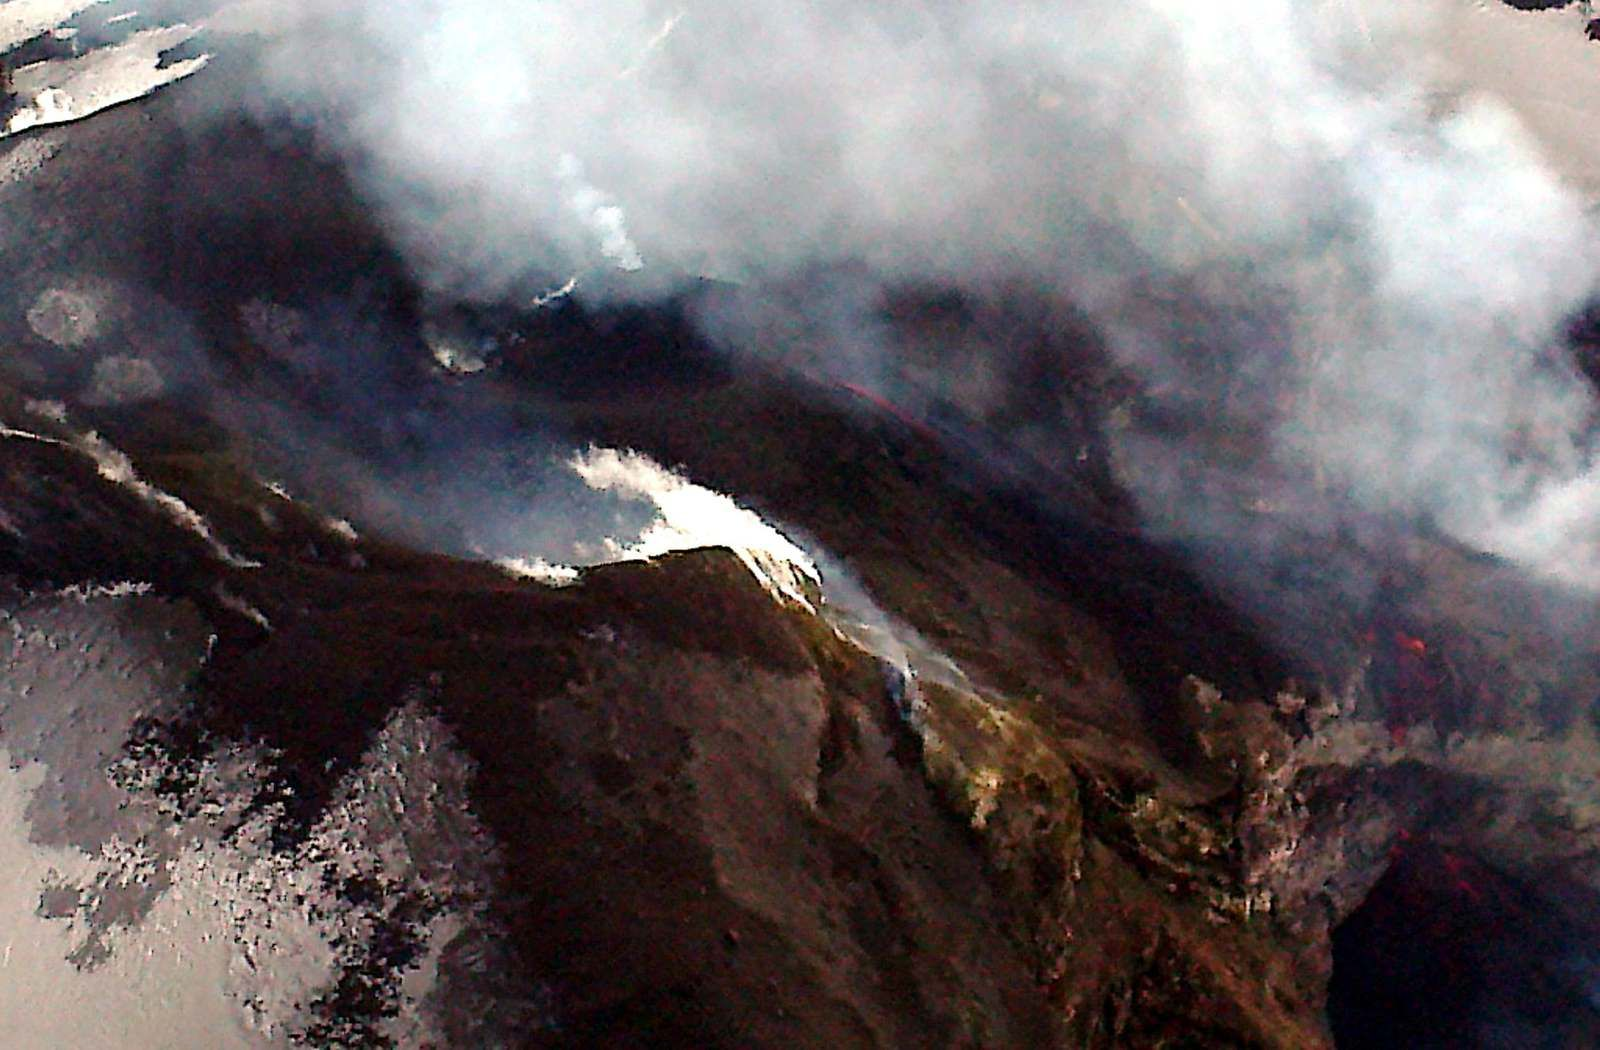 Etna - situation de la  VOR & BN le 06.12.2019 - photo Piero Berti , via J.Nasi / Butterfly Helicopters / INGVvulcani